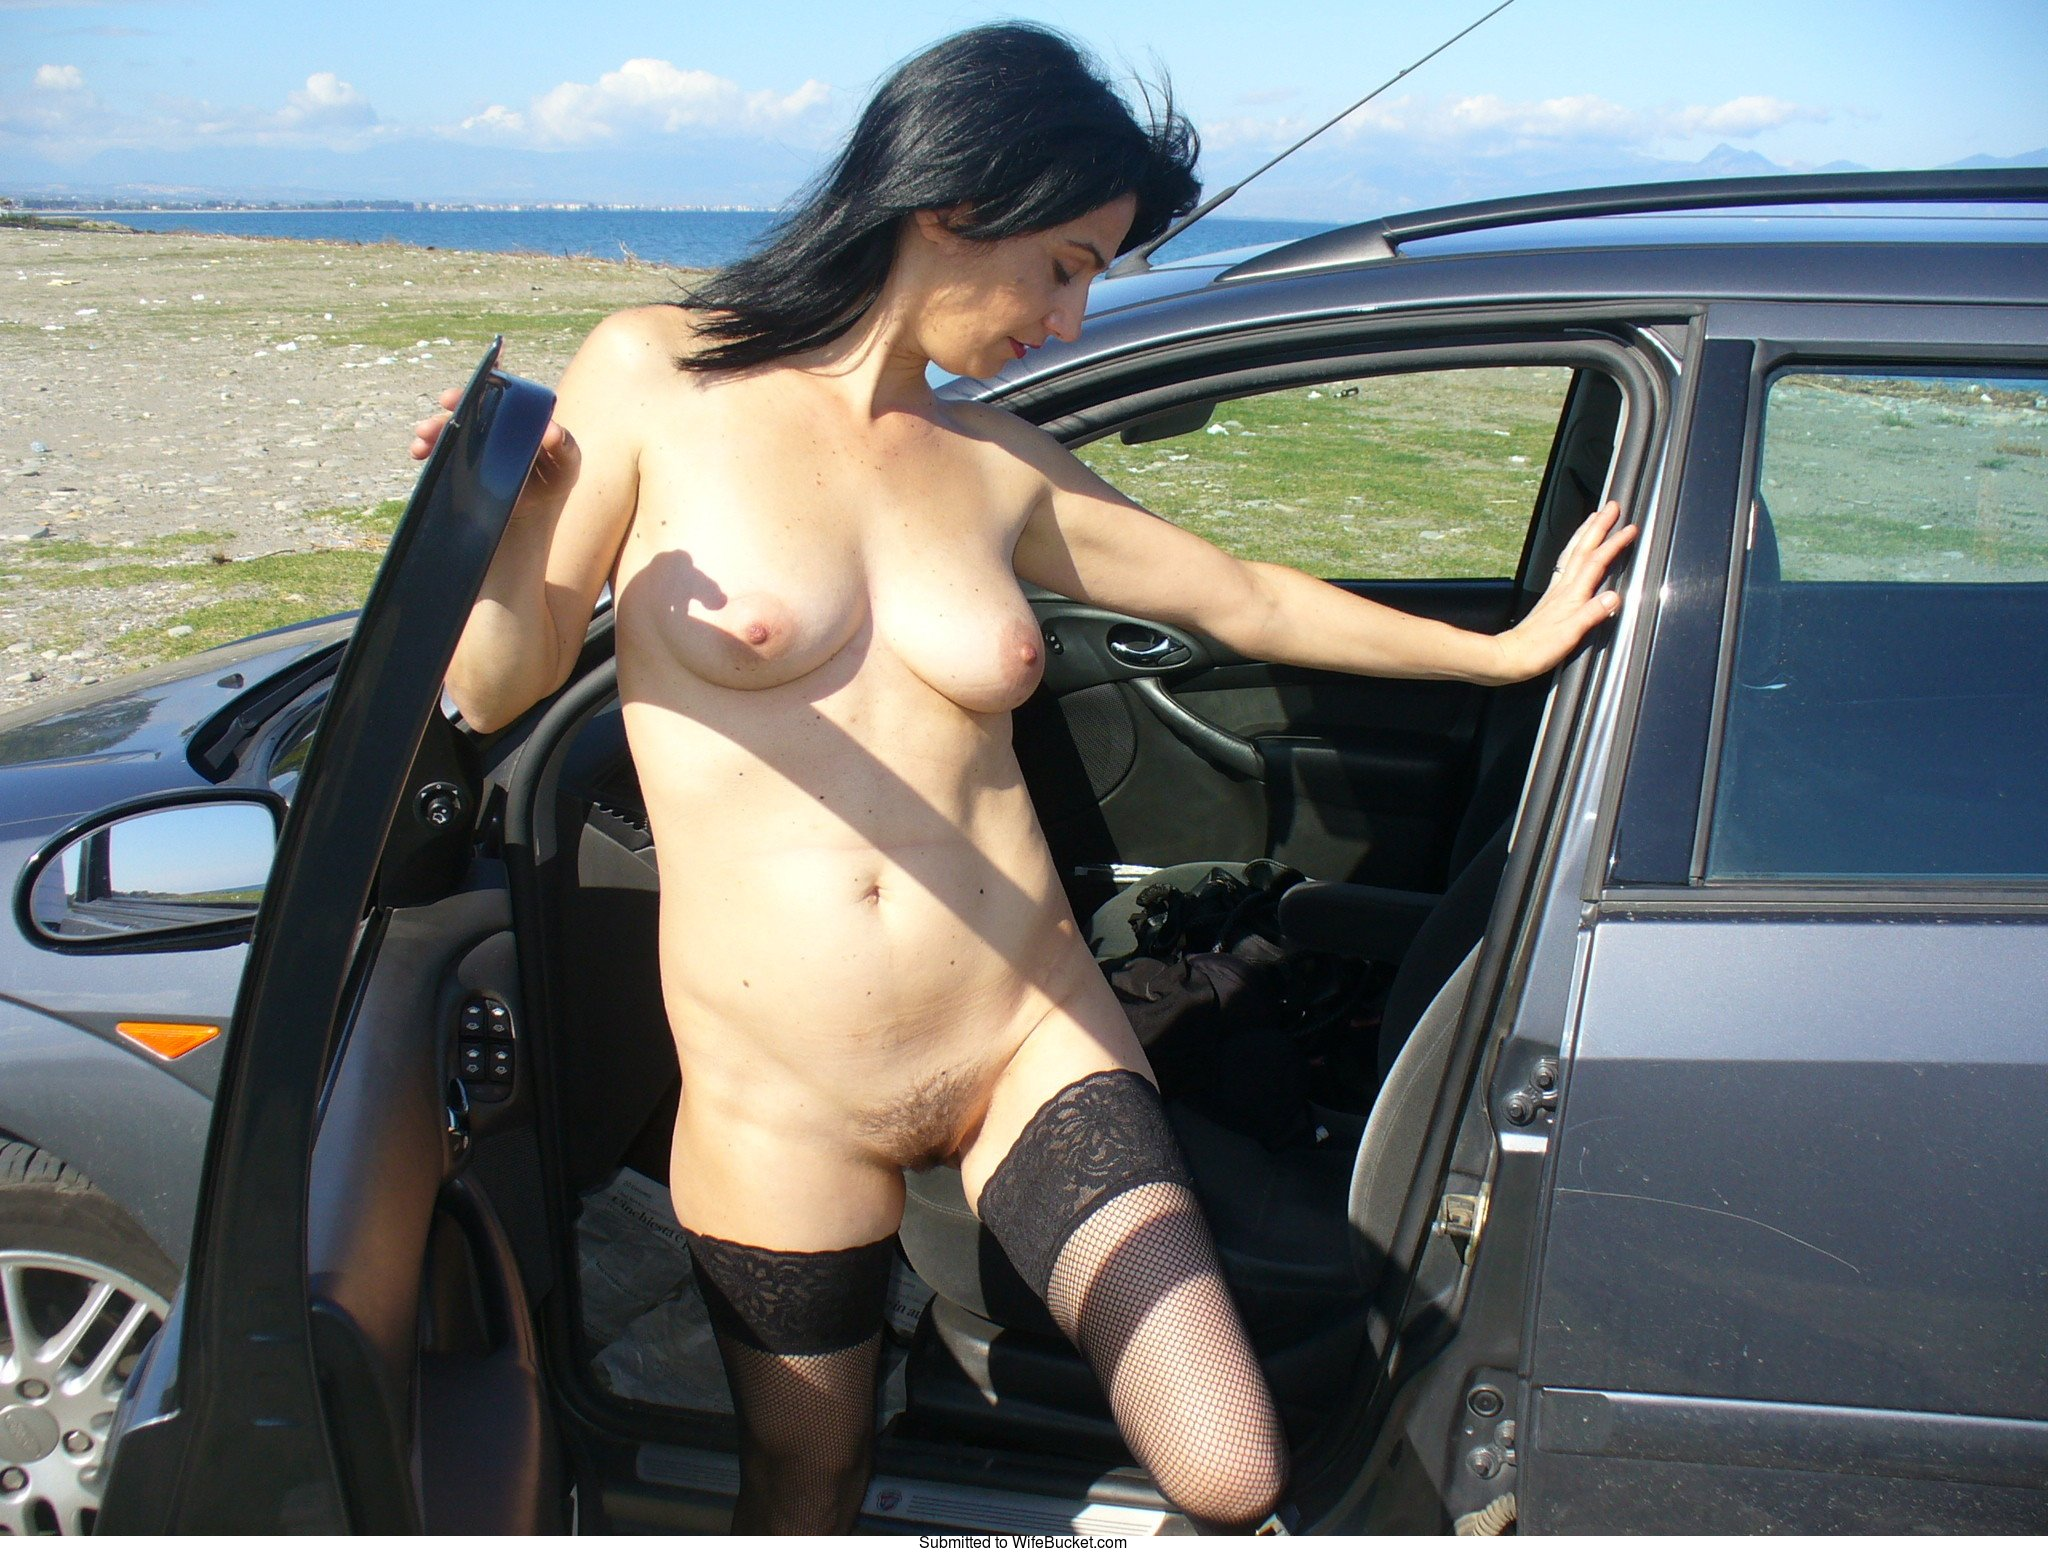 Amateur milf xxx car jacking suspect 10